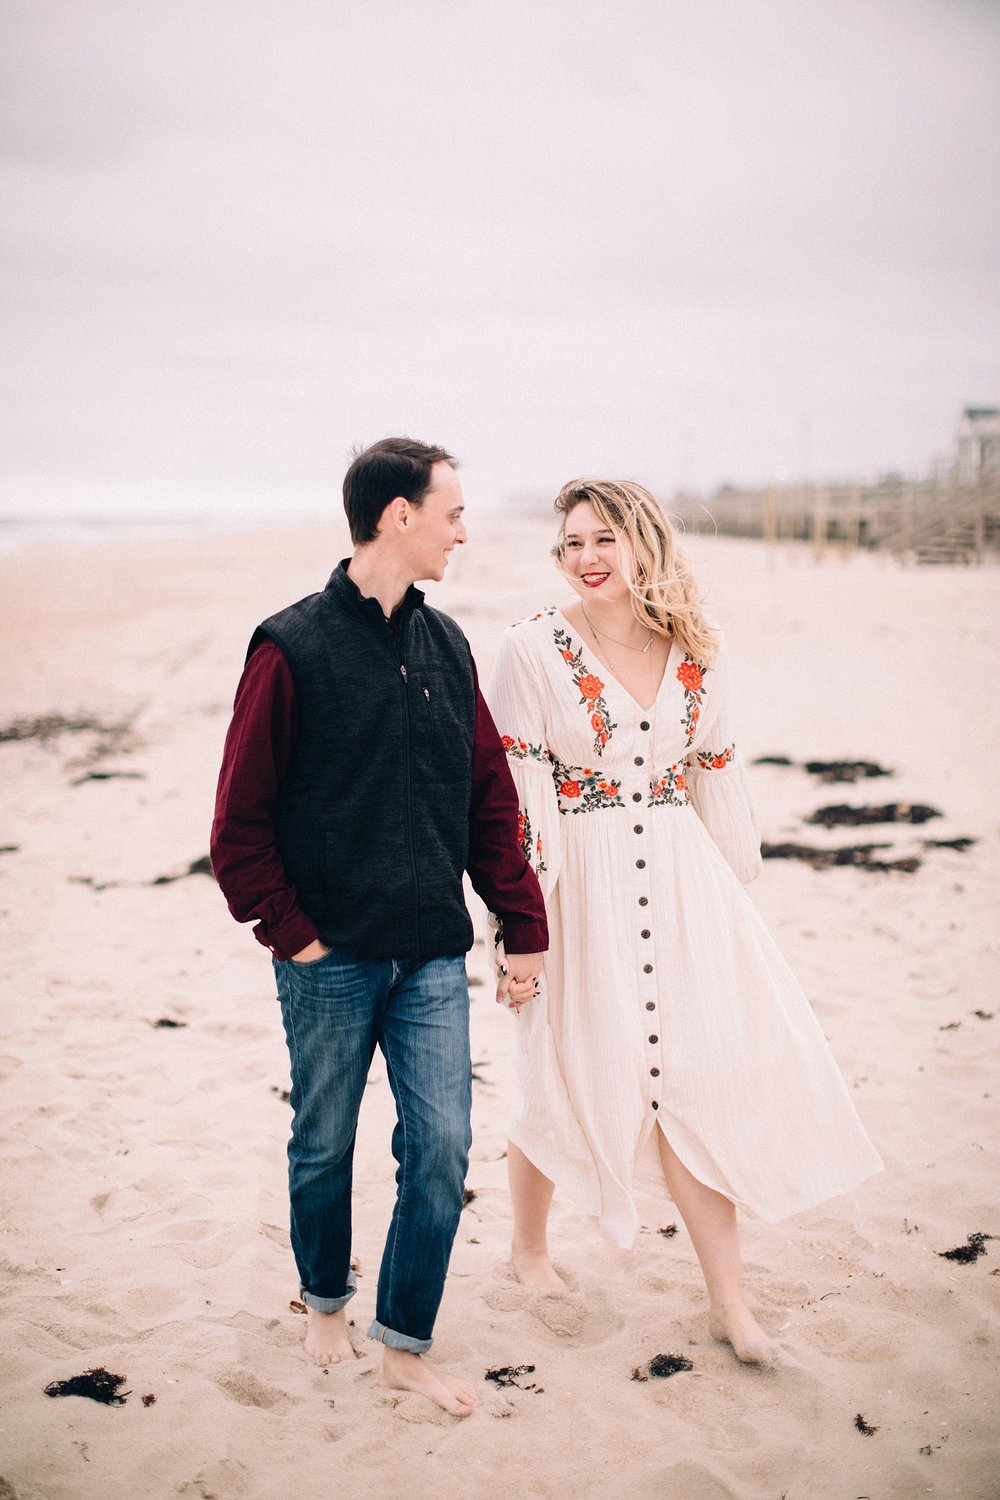 spring-lake-nj-engagement-session-cloudy-day-beach_0003.jpg